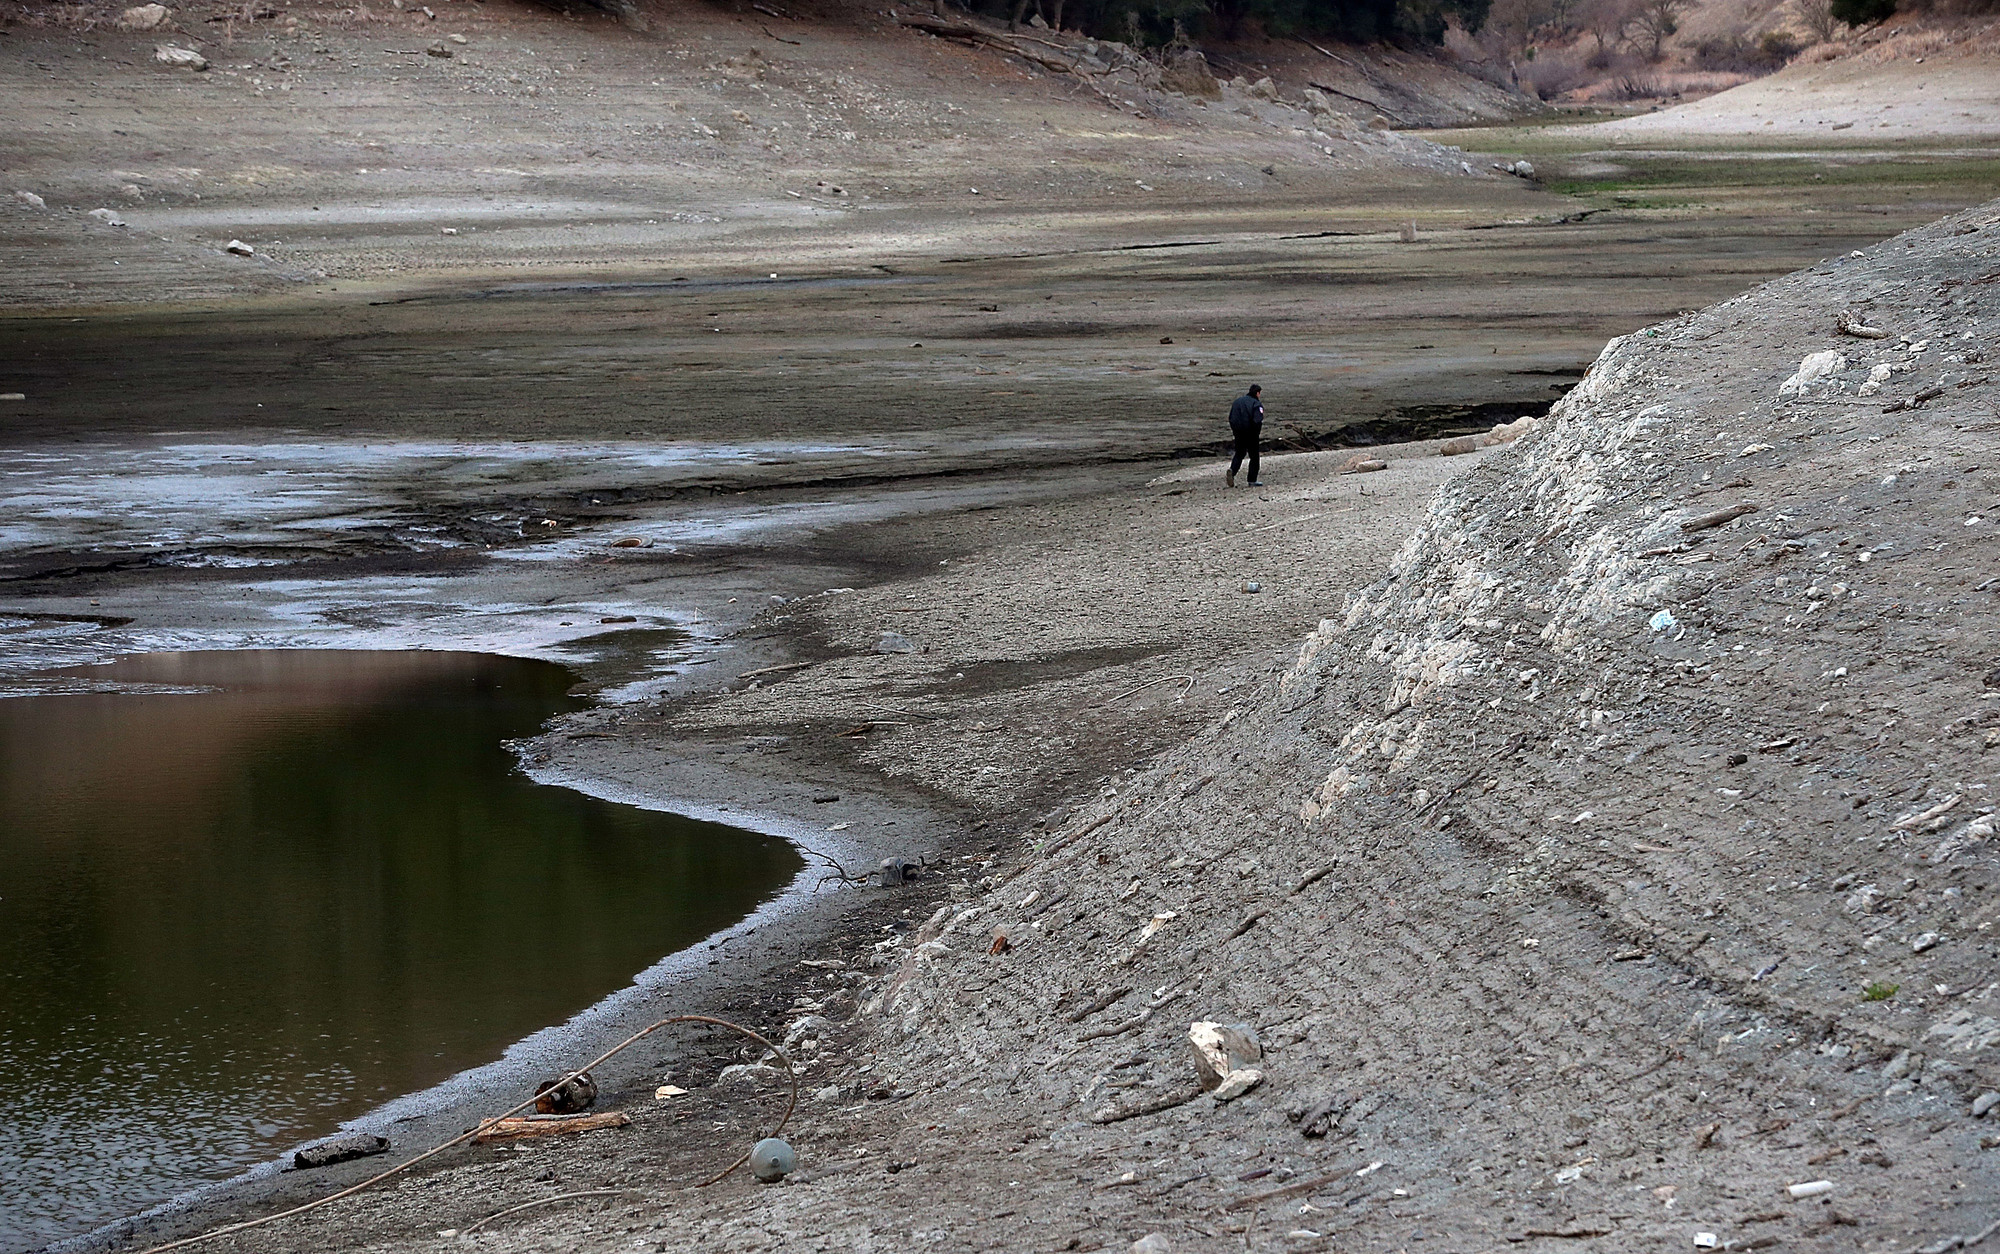 A security guard at the Santa Clara Valley Water District's Almaden Reservoir. (Justin Sullivan/Getty Images)